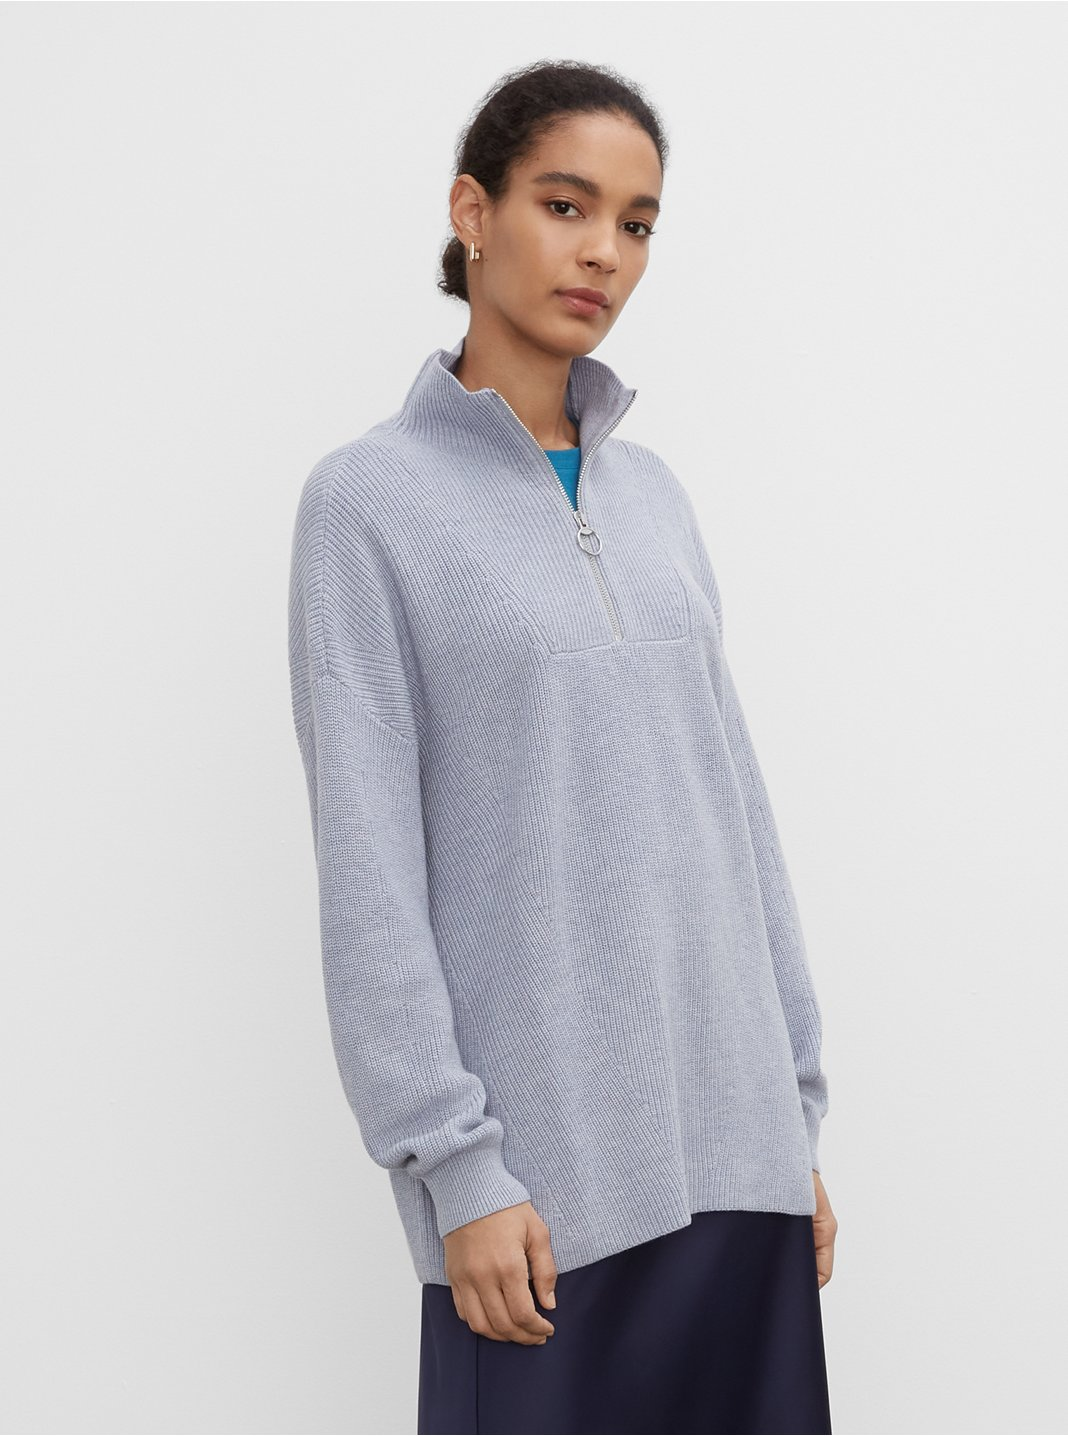 Quarter Zip Pullover Sweater